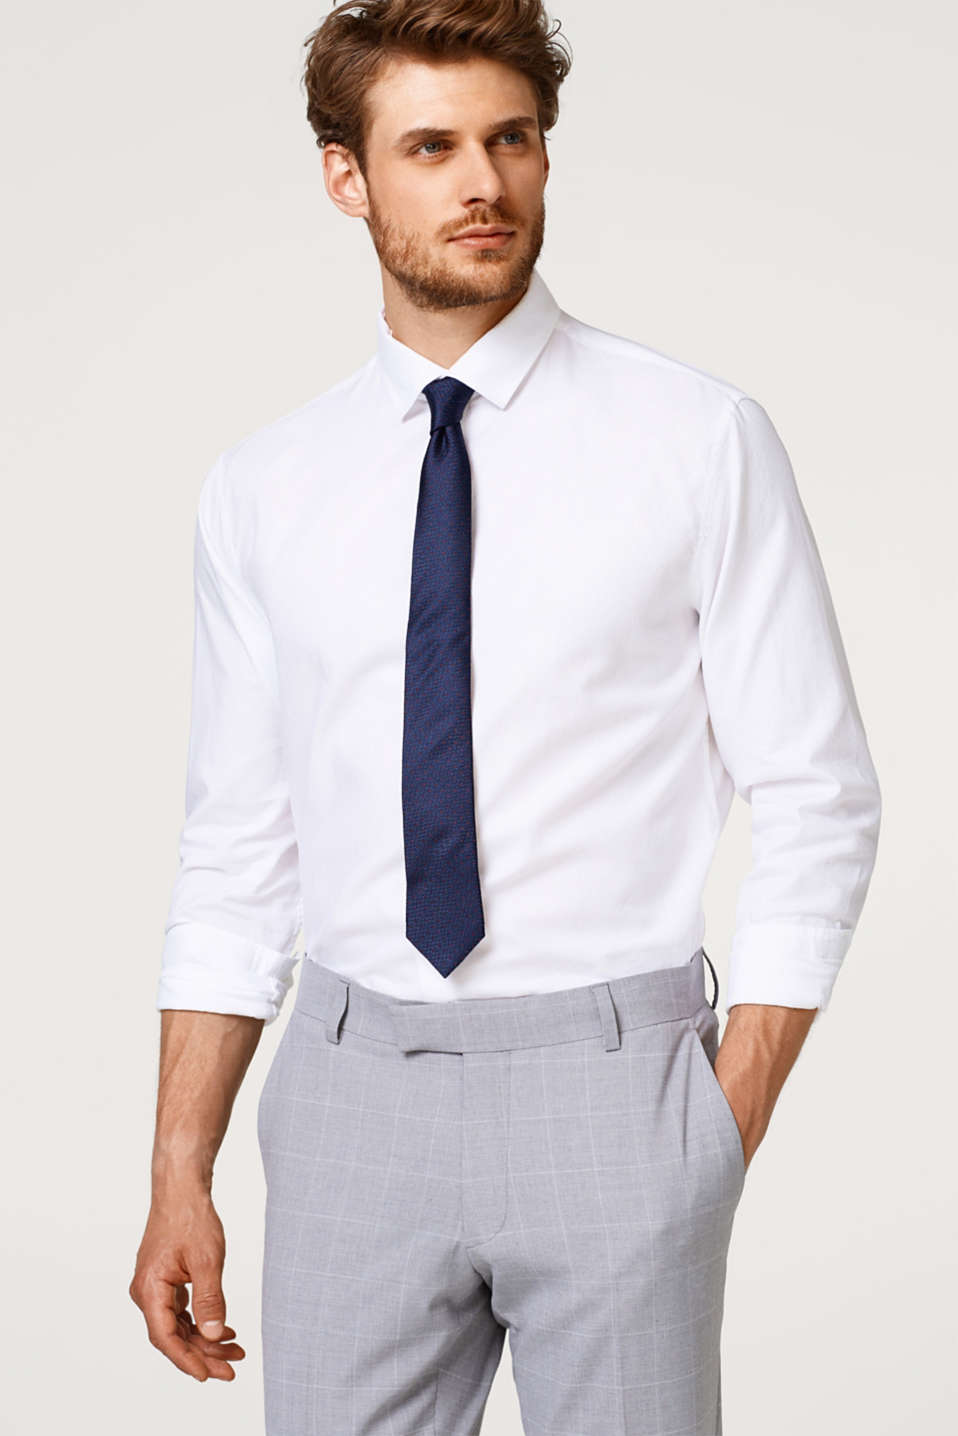 Esprit - Textured shirt in 100% cotton